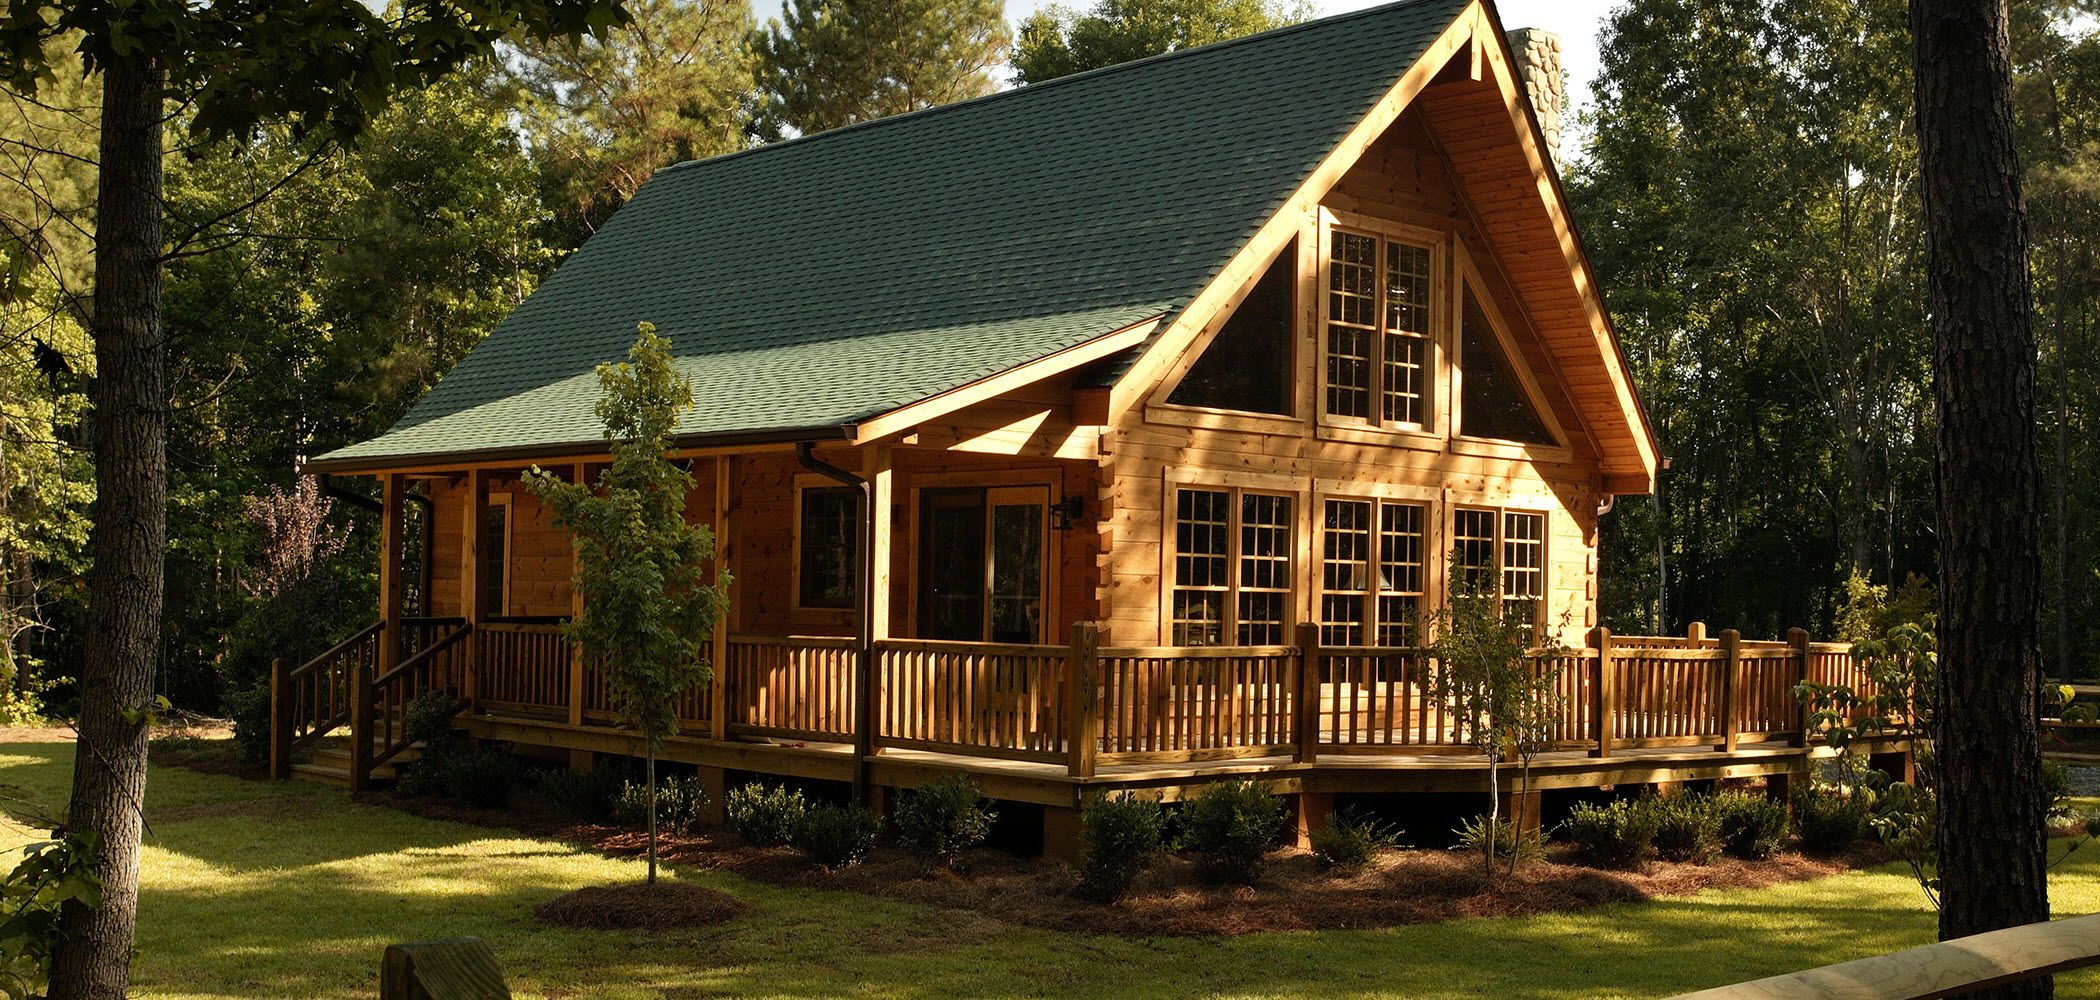 homes wiltshire cabins a luxury home modular cabin mobile or frame ideal log kit manufacturers timber considering living